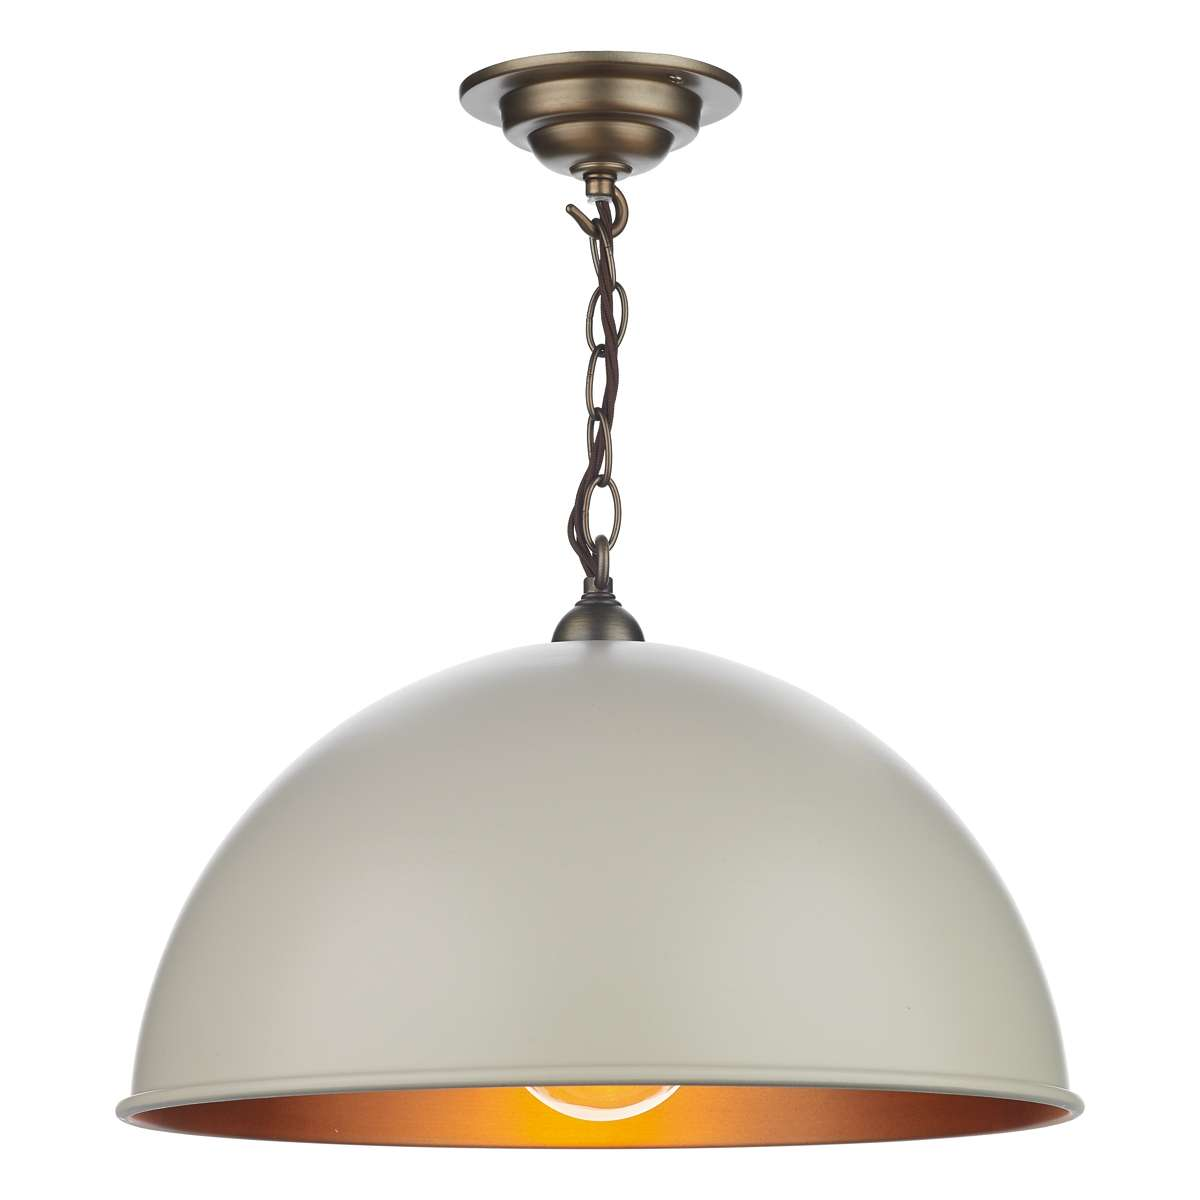 Ealing Small Pendant in Cotswold Cream